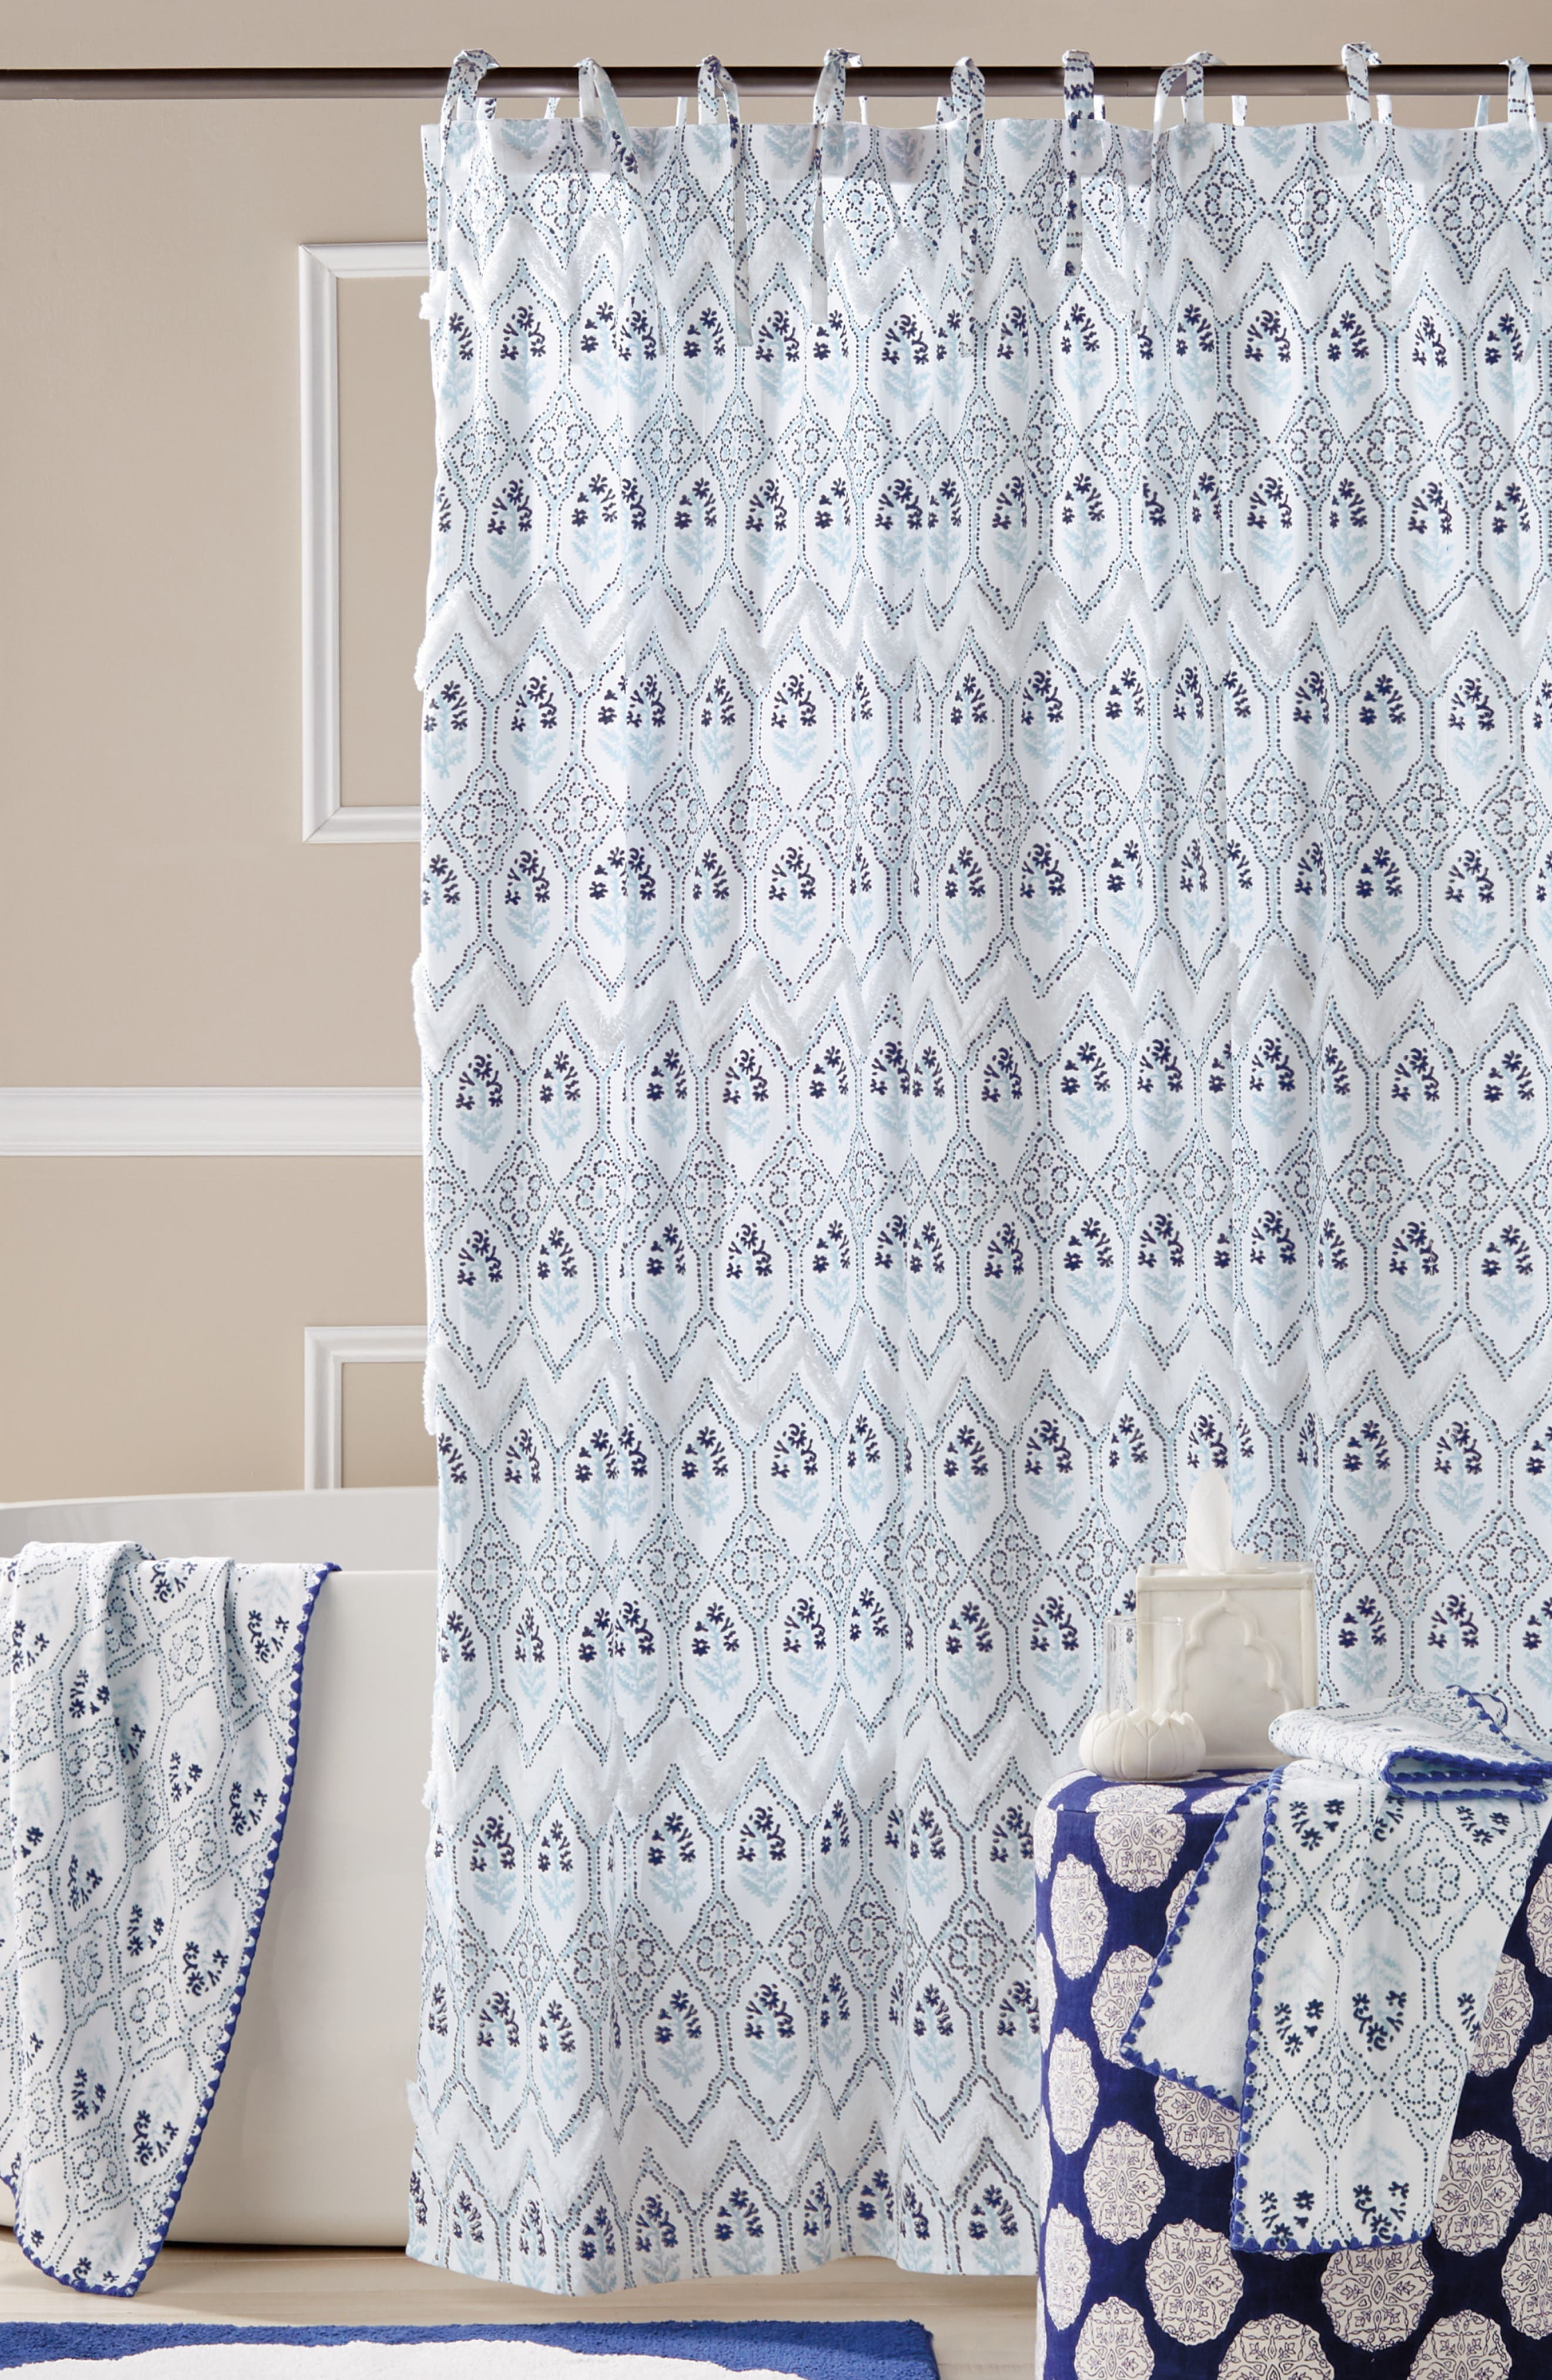 Cotton tufting adds dimensional texture to the block print of this shower curtain that hangs from either charming ribbon ties or more tailored buttonholes. Style Name: John Robshaw Sahasa Shower Curtain. Style Number: 6123475. Available in stores.